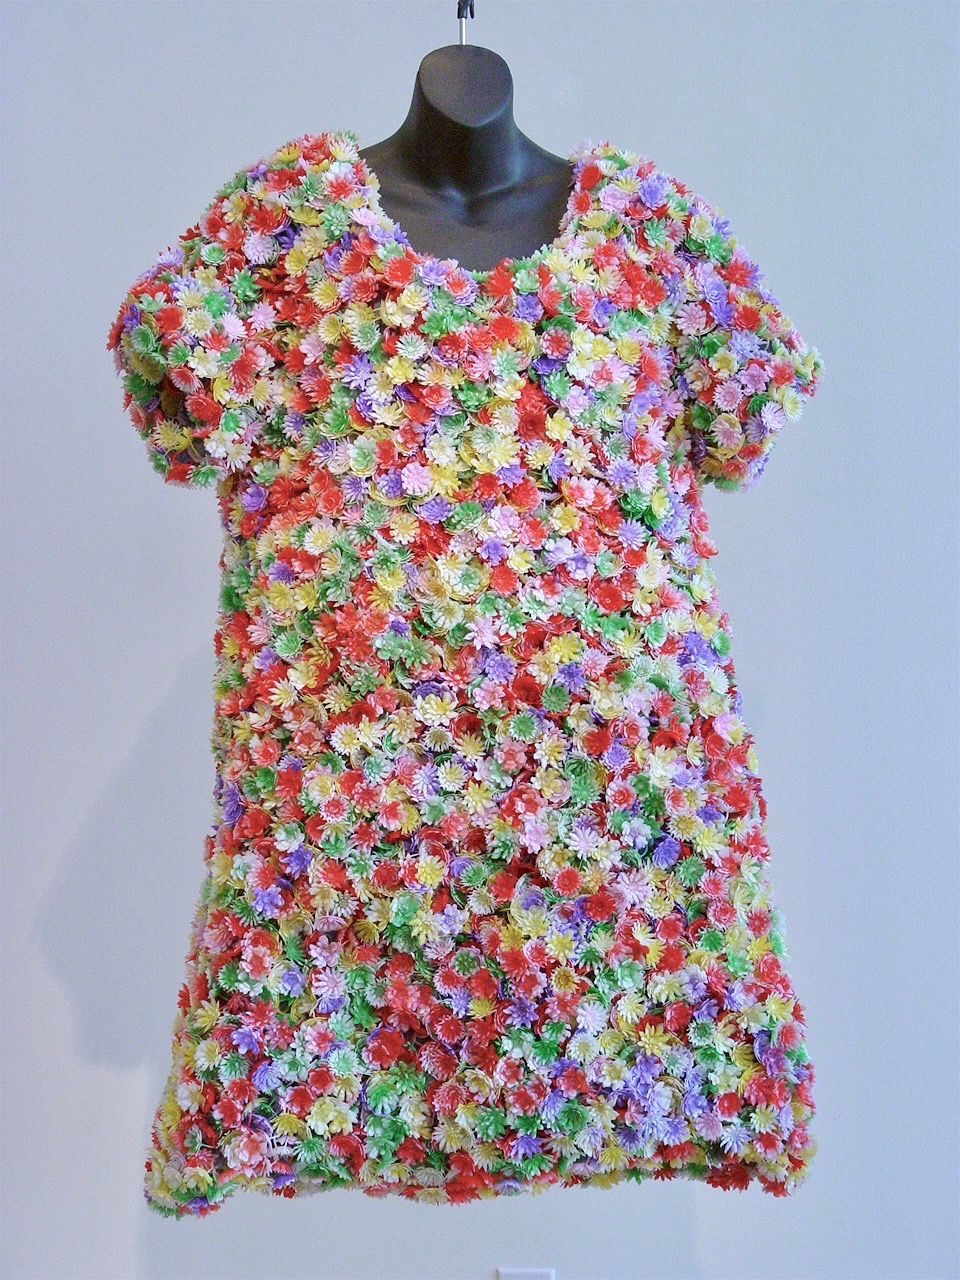 Garment for a Well Behaved Woman.   Plastic flower rings, thread, linen dress.